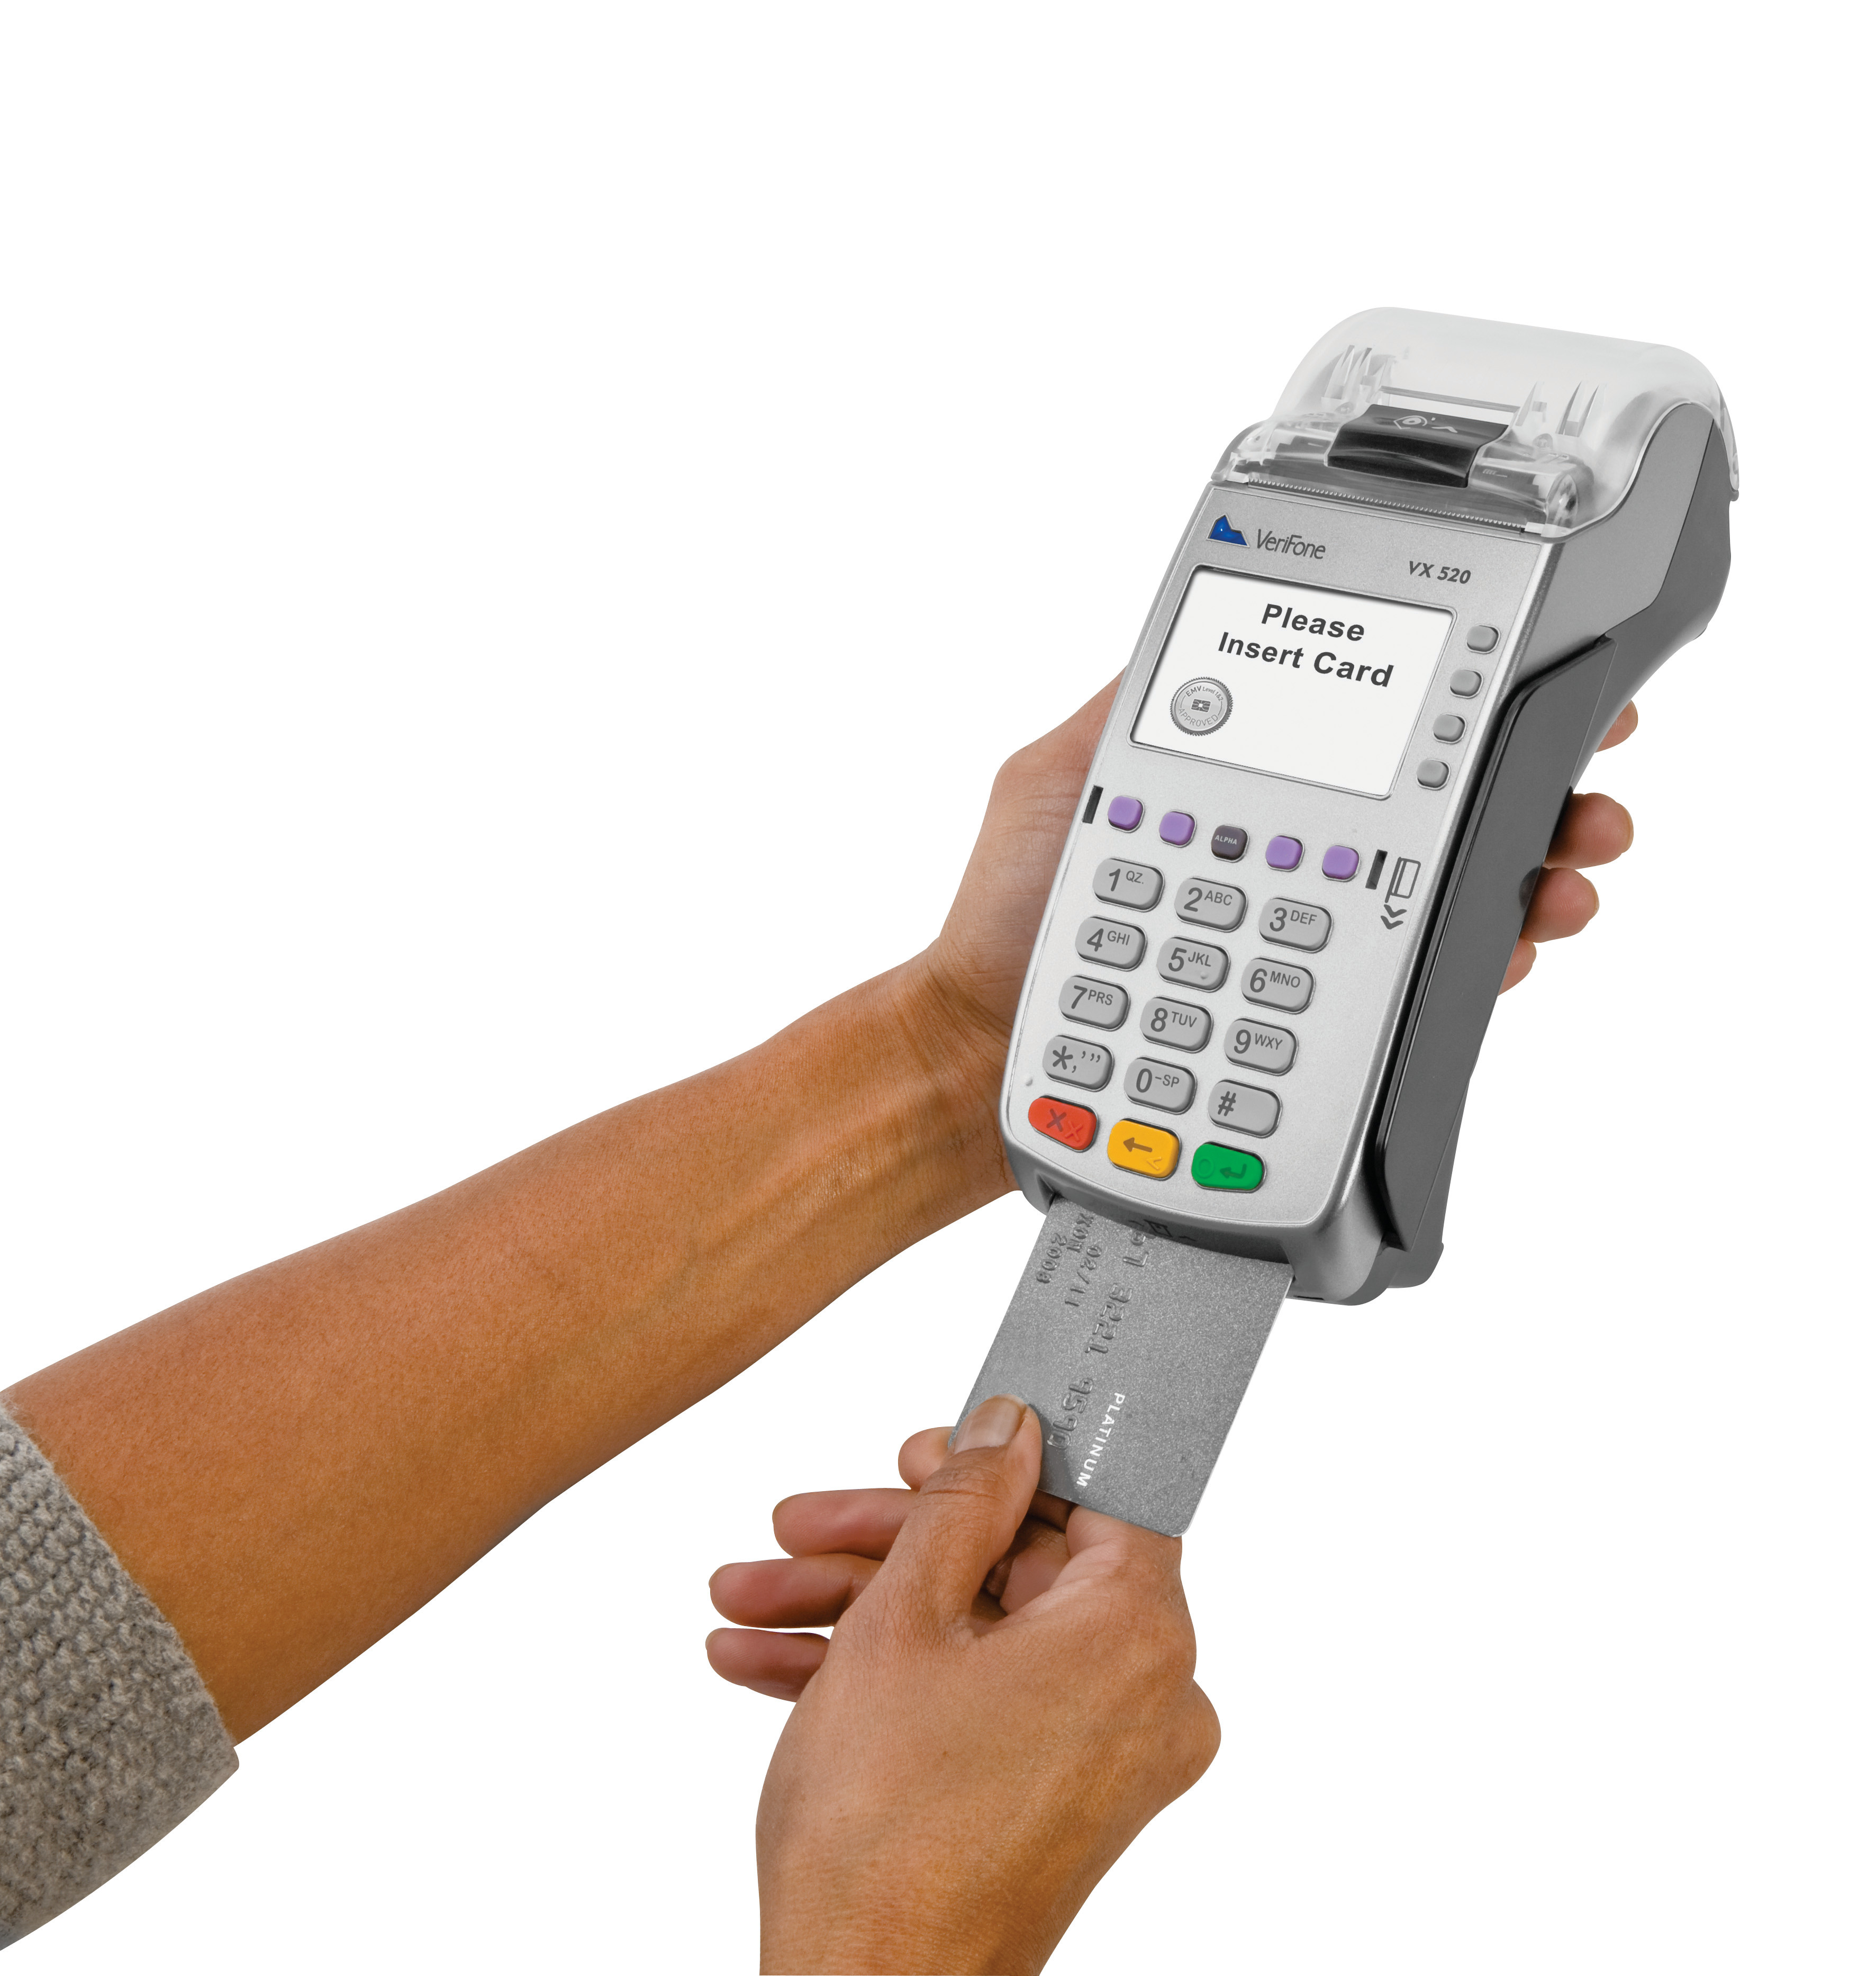 Multicaja Deploys 3G Wireless Payment Terminal Solution from